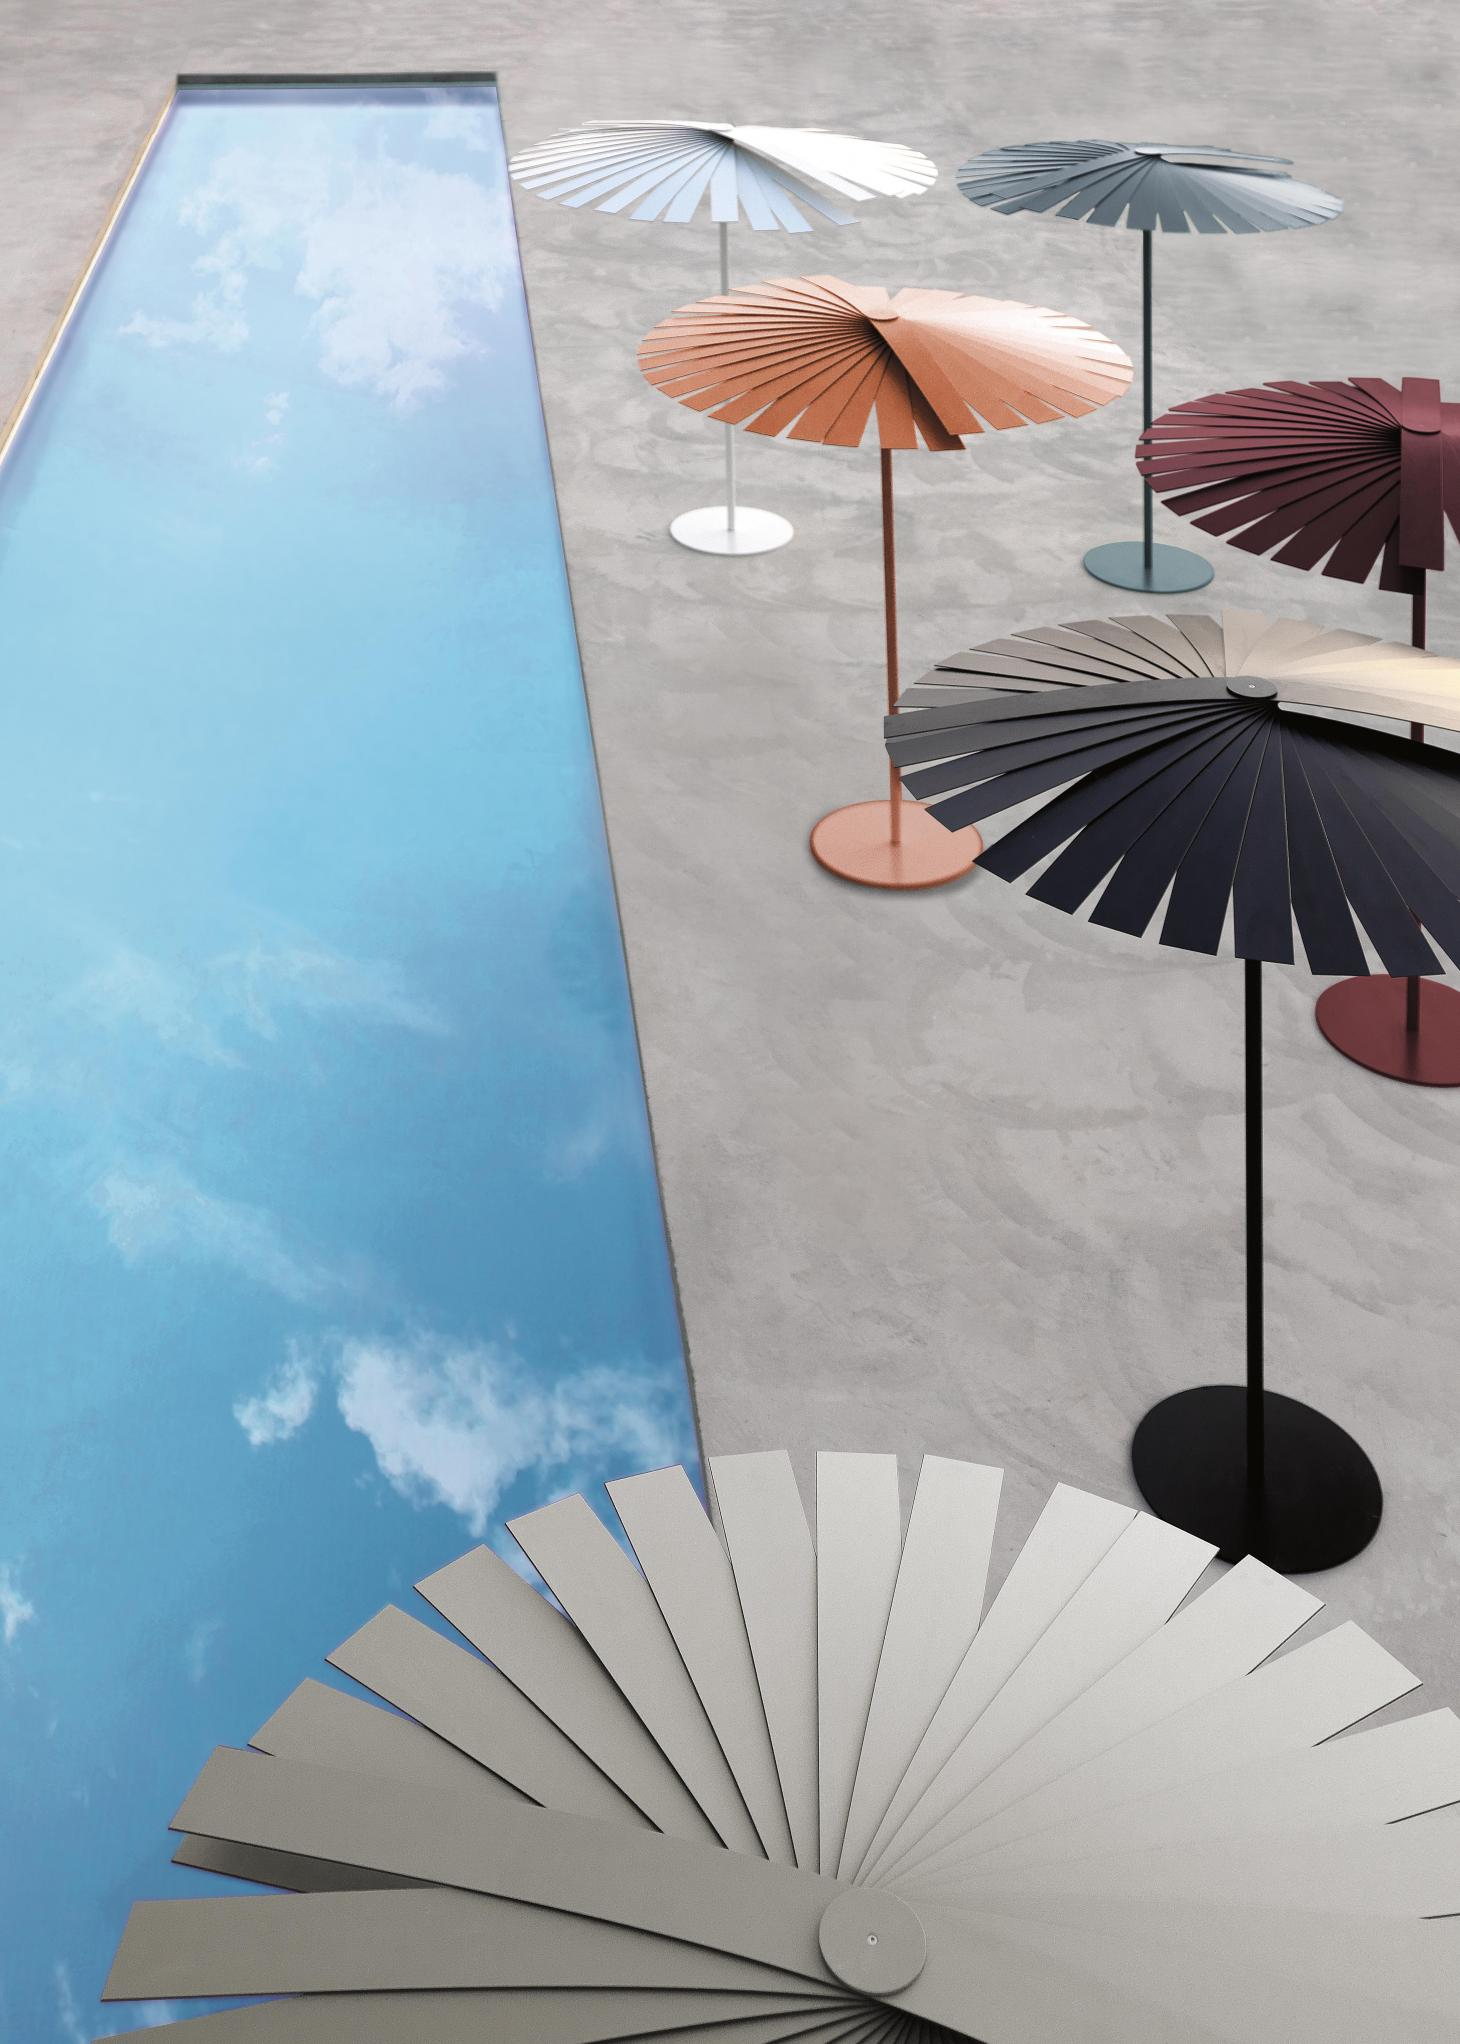 A series of colourful fan shaped parasols by Kettal, near a pool reflecting the sky